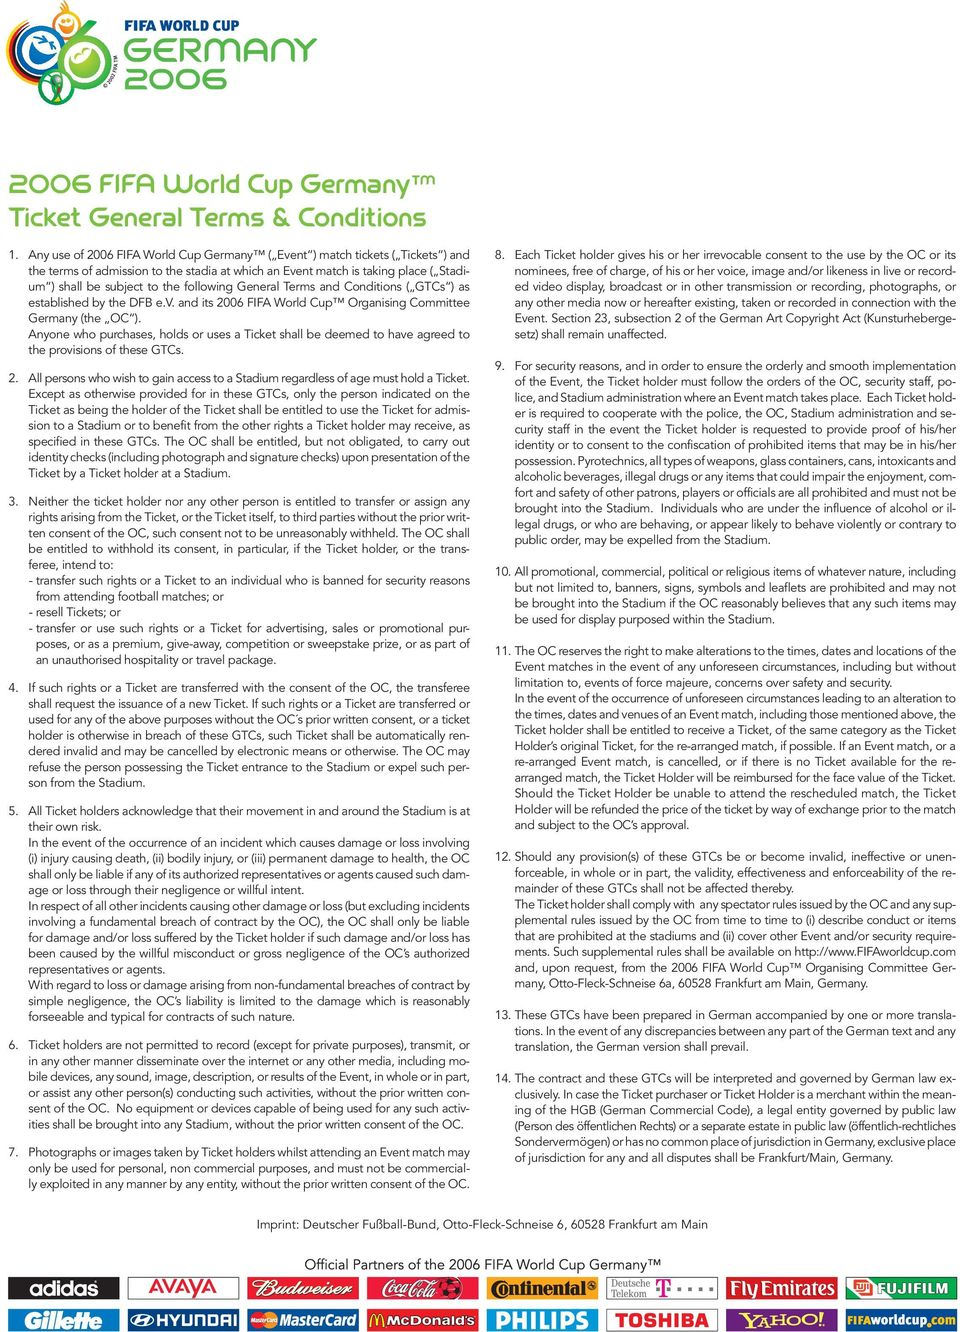 following General Terms and Conditions ( GTCs ) as established by the DFB e.v. and its 2006 FIFA World Cup Organising Committee Germany (the OC ).